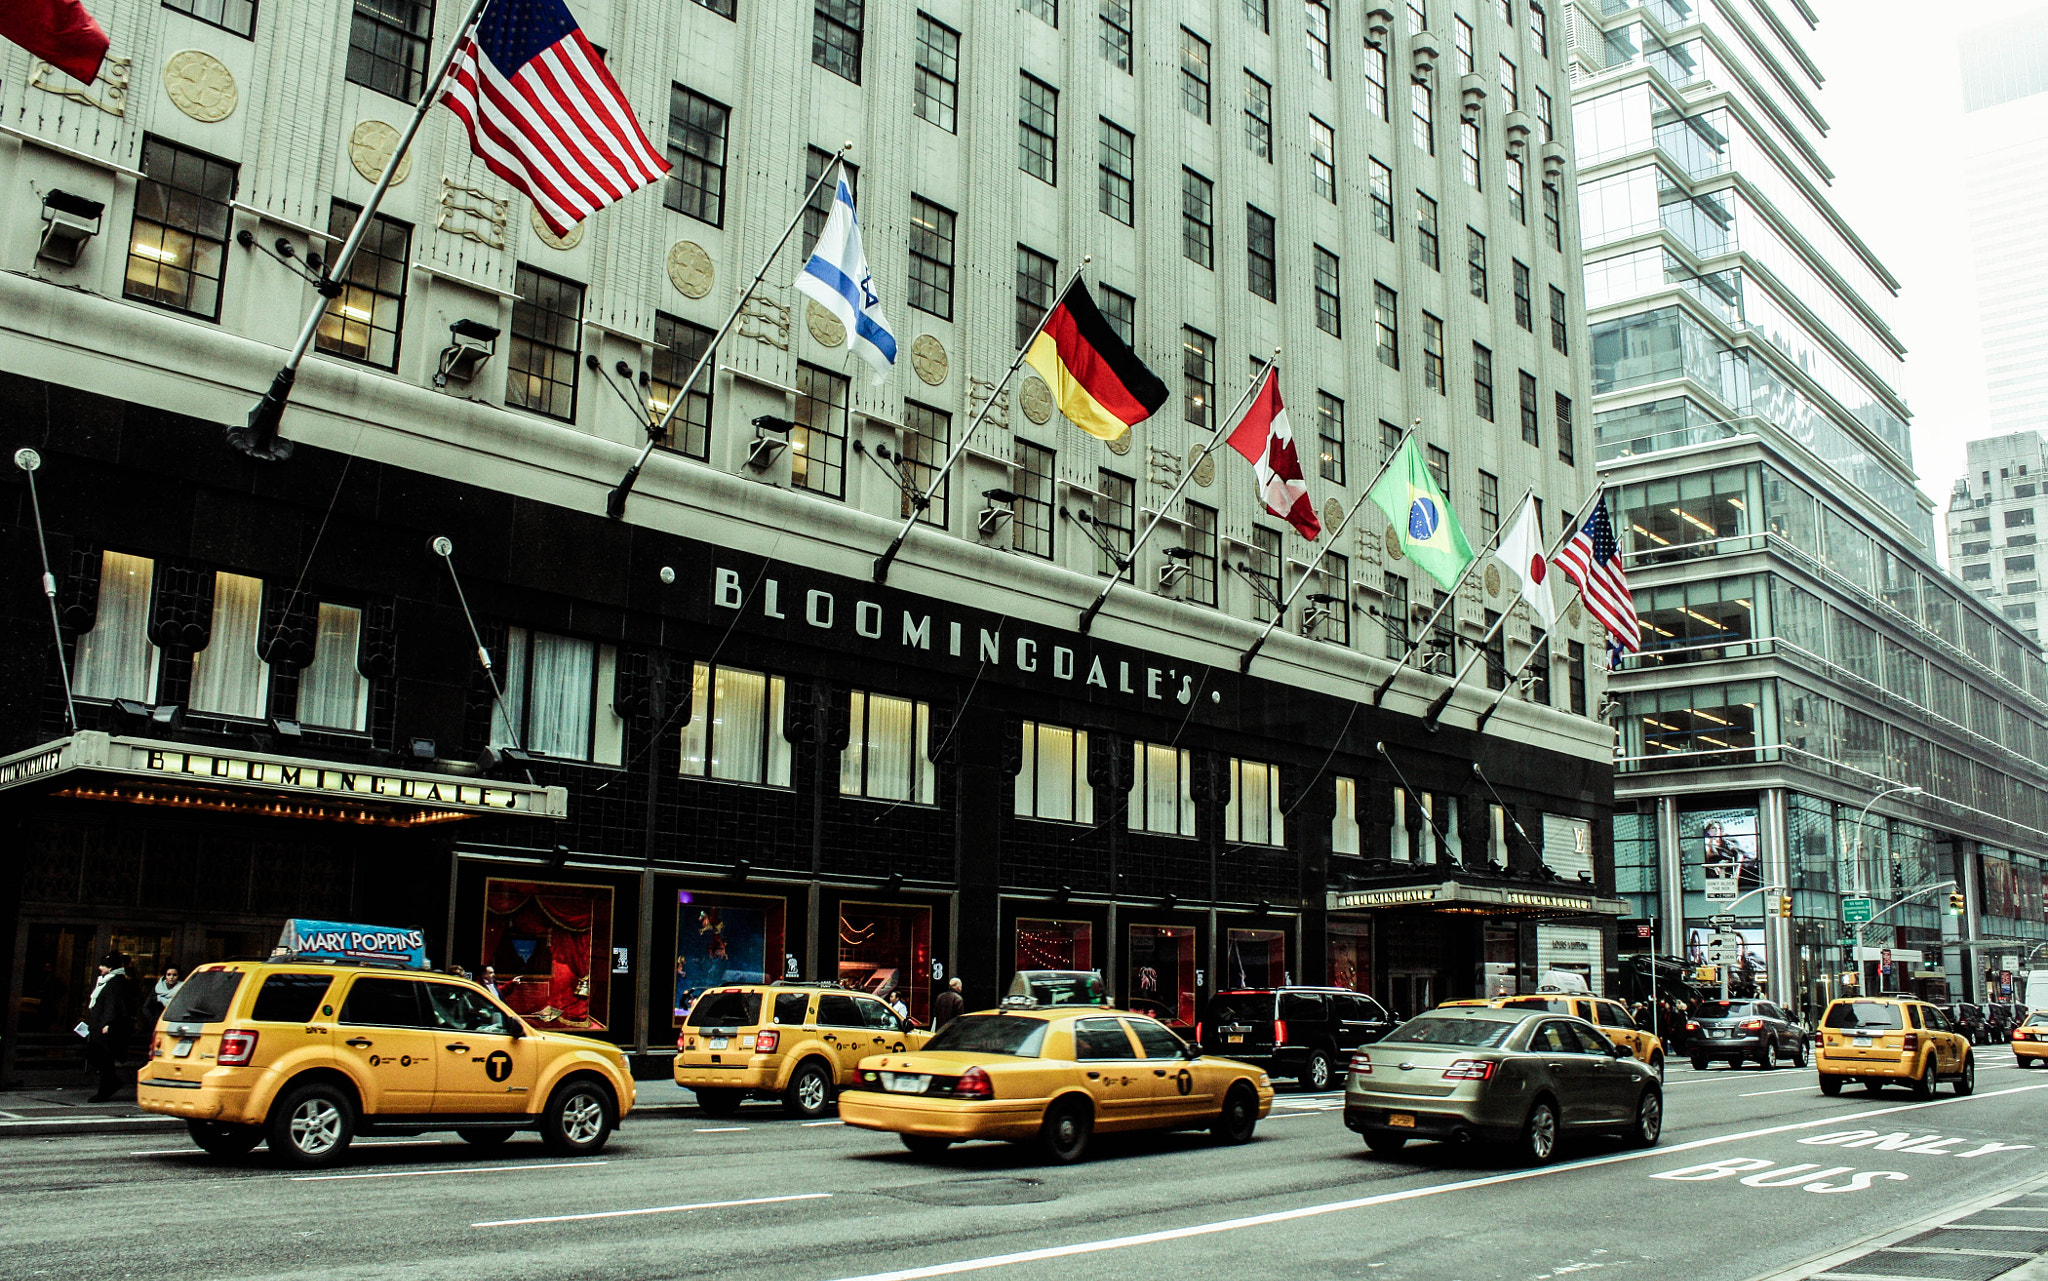 Photograph Bloomingdale's NYC by Gema Fernández on 500px